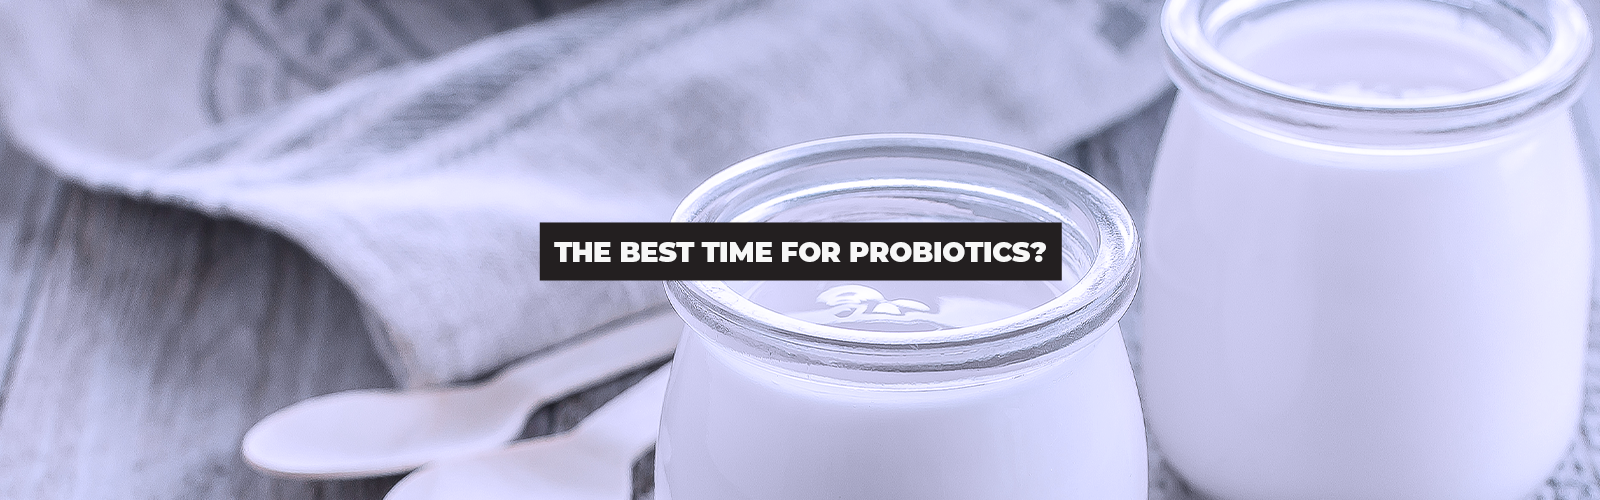 When Is the Best Time to Take Probiotics? The Effects of Timing on Bioavailability